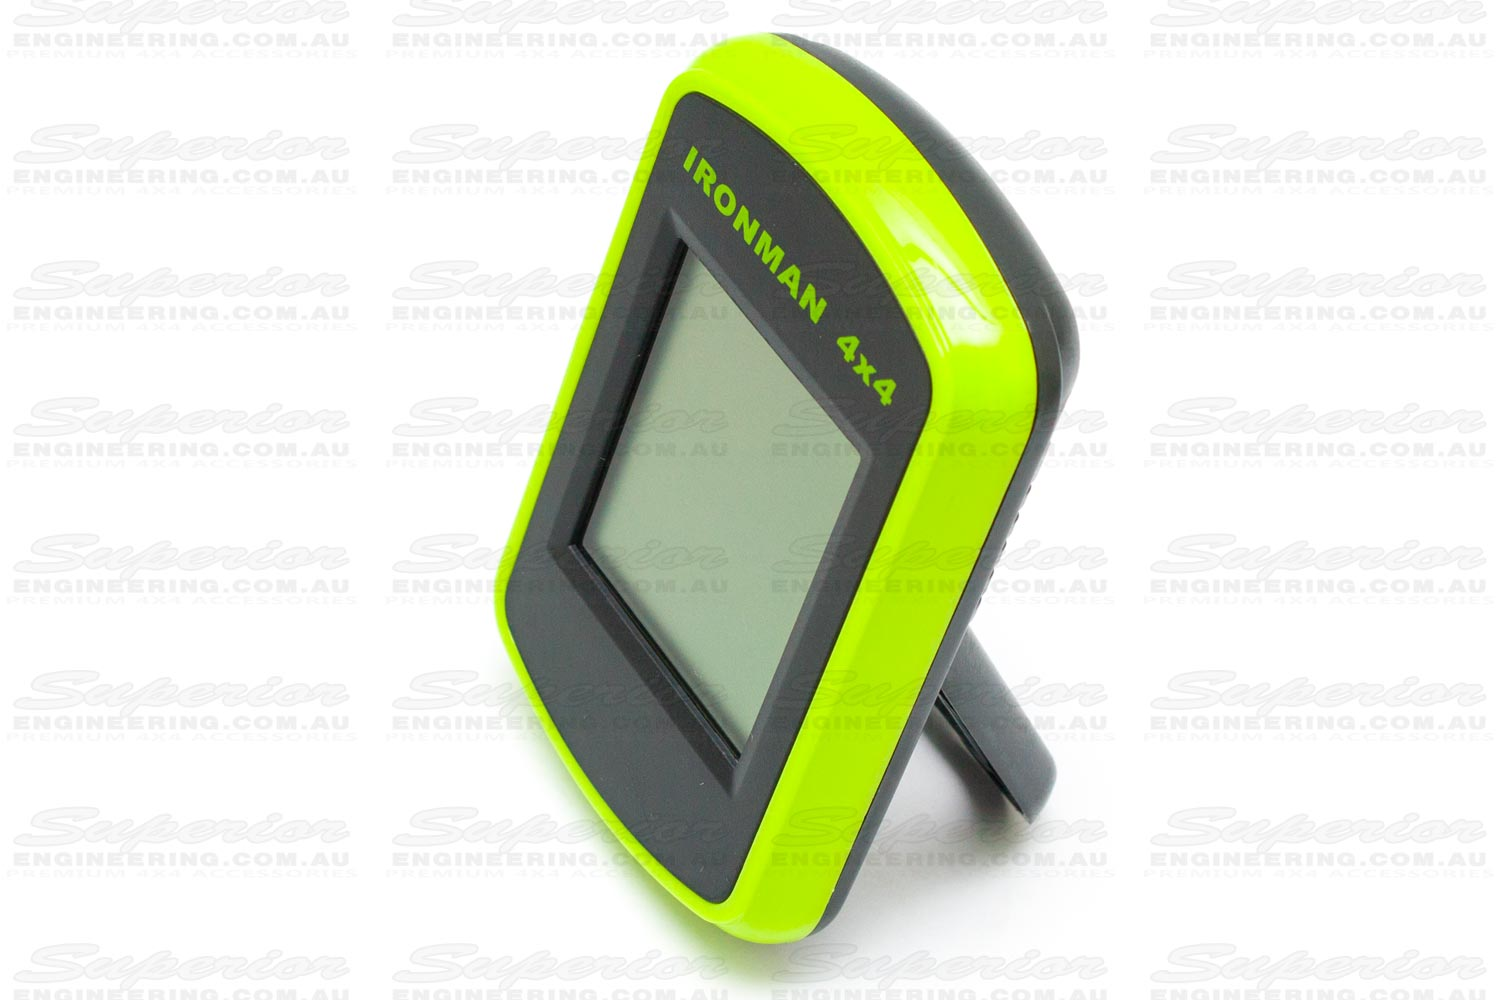 Ironman 4x4 Wireless Fridge Thermometer - Right Side View